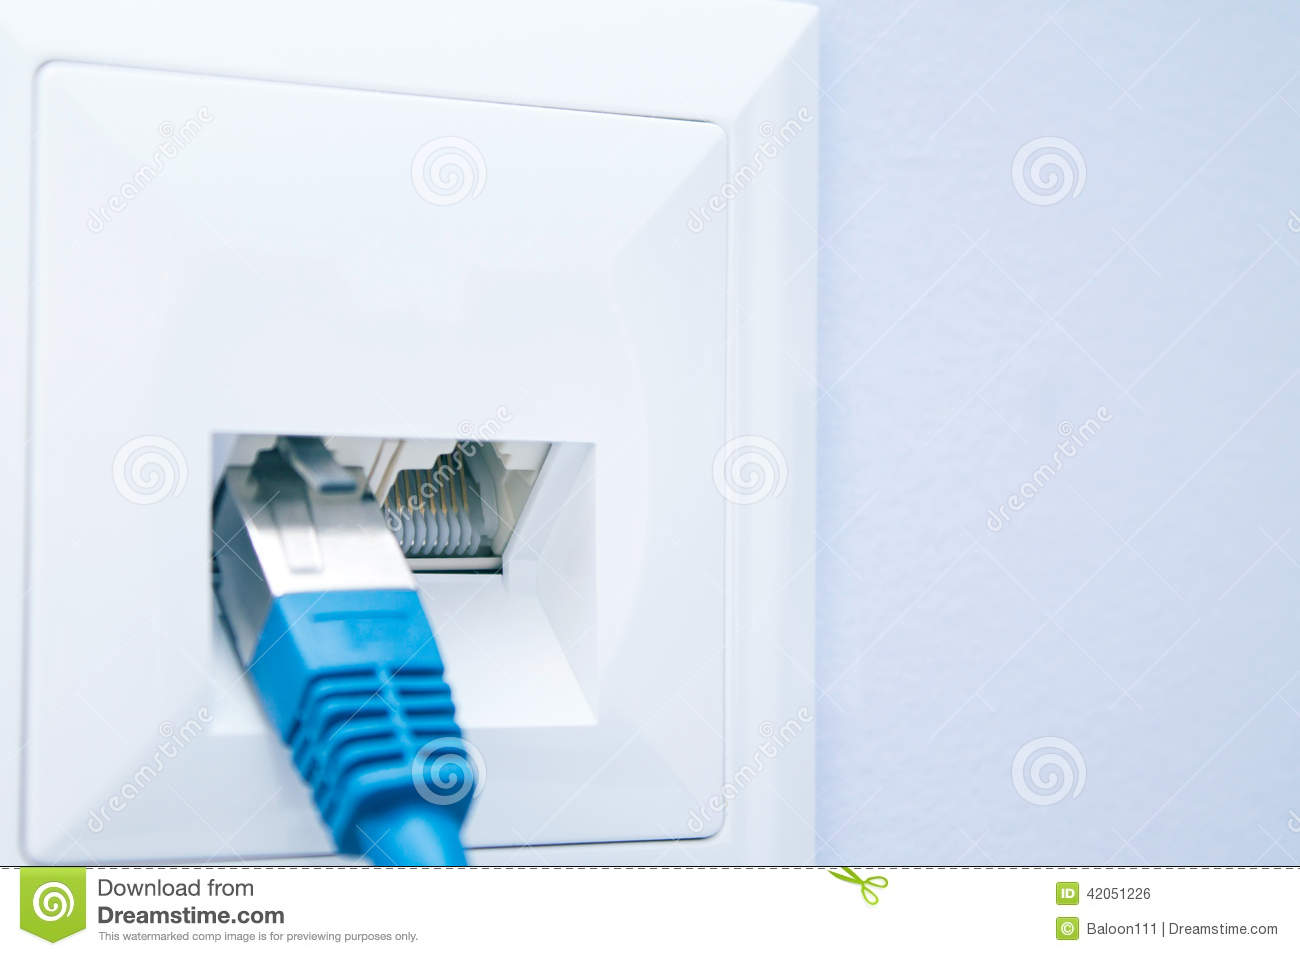 Wiring Lan Wall Socket The Portal And Forum Of Diagram Ethernet Cable Plugged Into Outlet Stock Photo Image